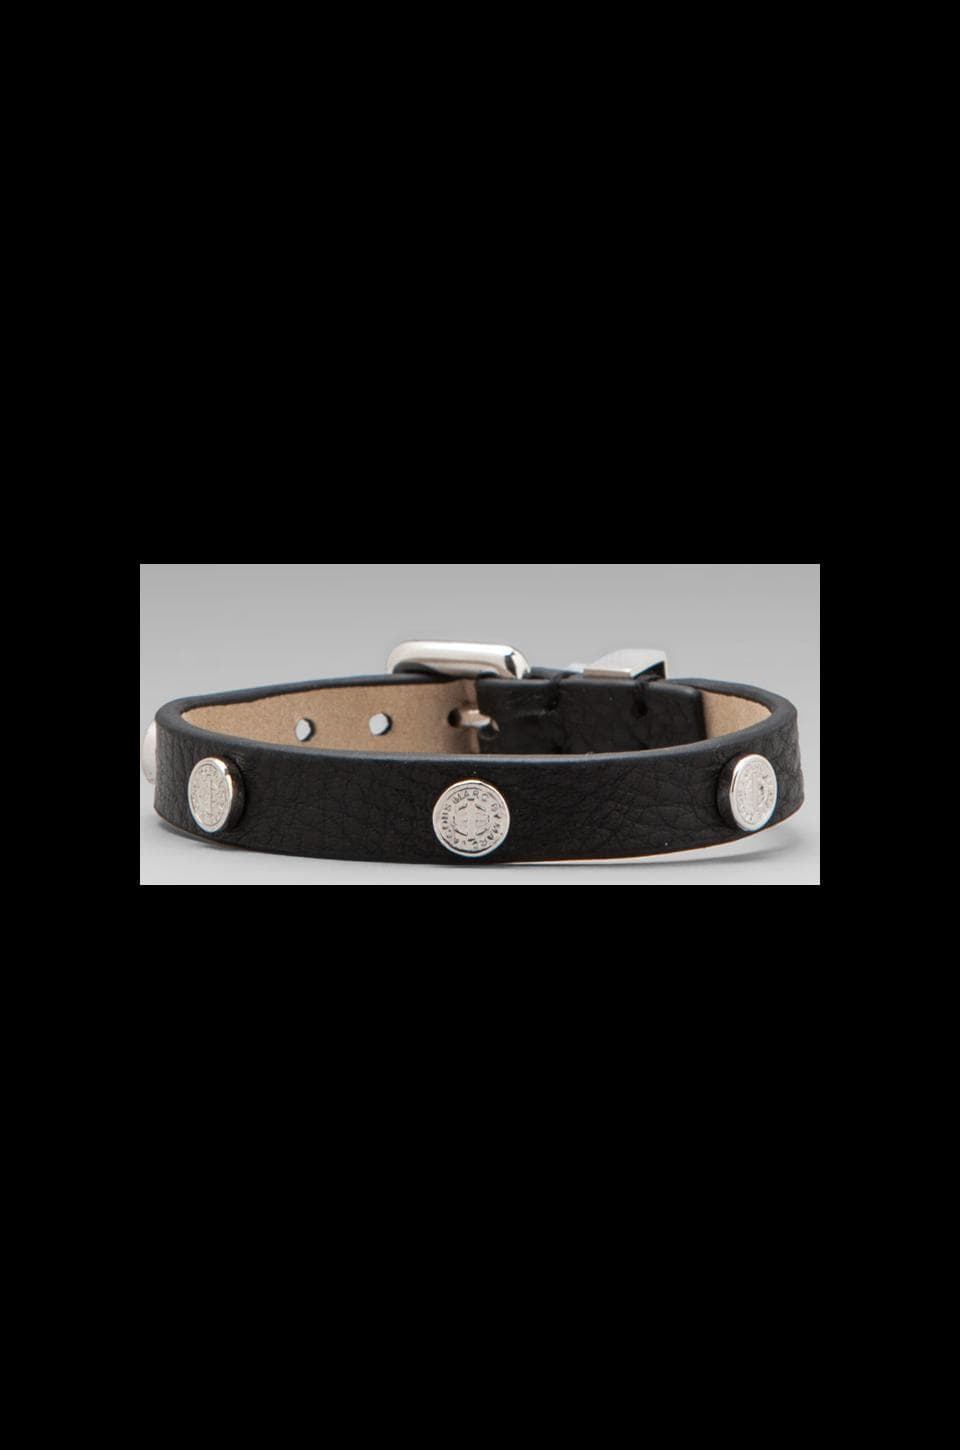 Marc by Marc Jacobs Turnlock Charm Leather Bracelet in Black/Argento